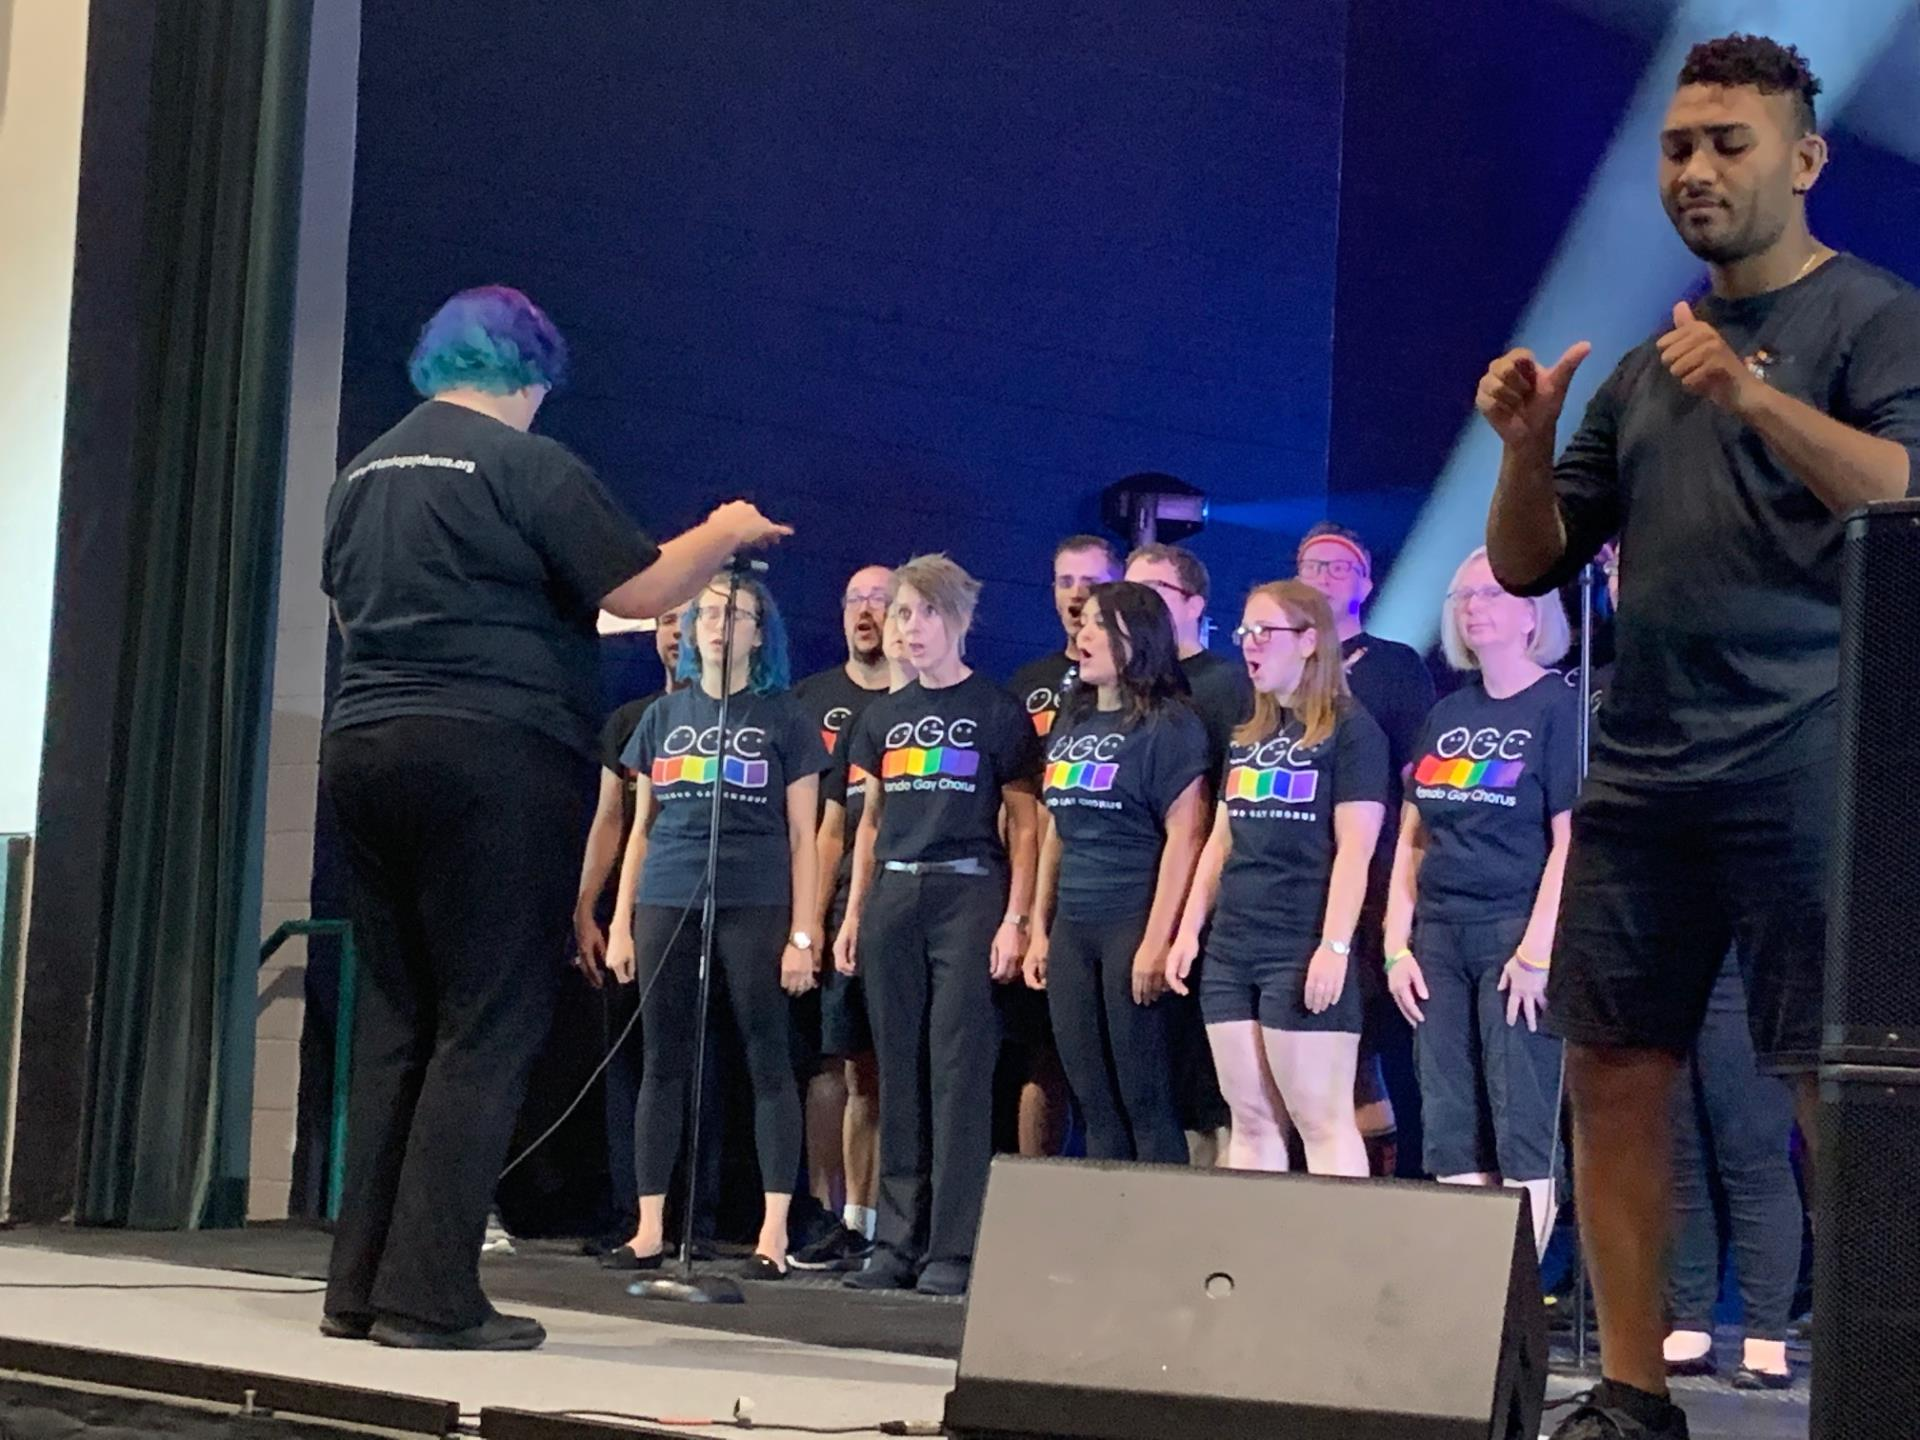 This is a photo of a choir singing at Pridefest Kissimmee at the Kissimmee Civic Center